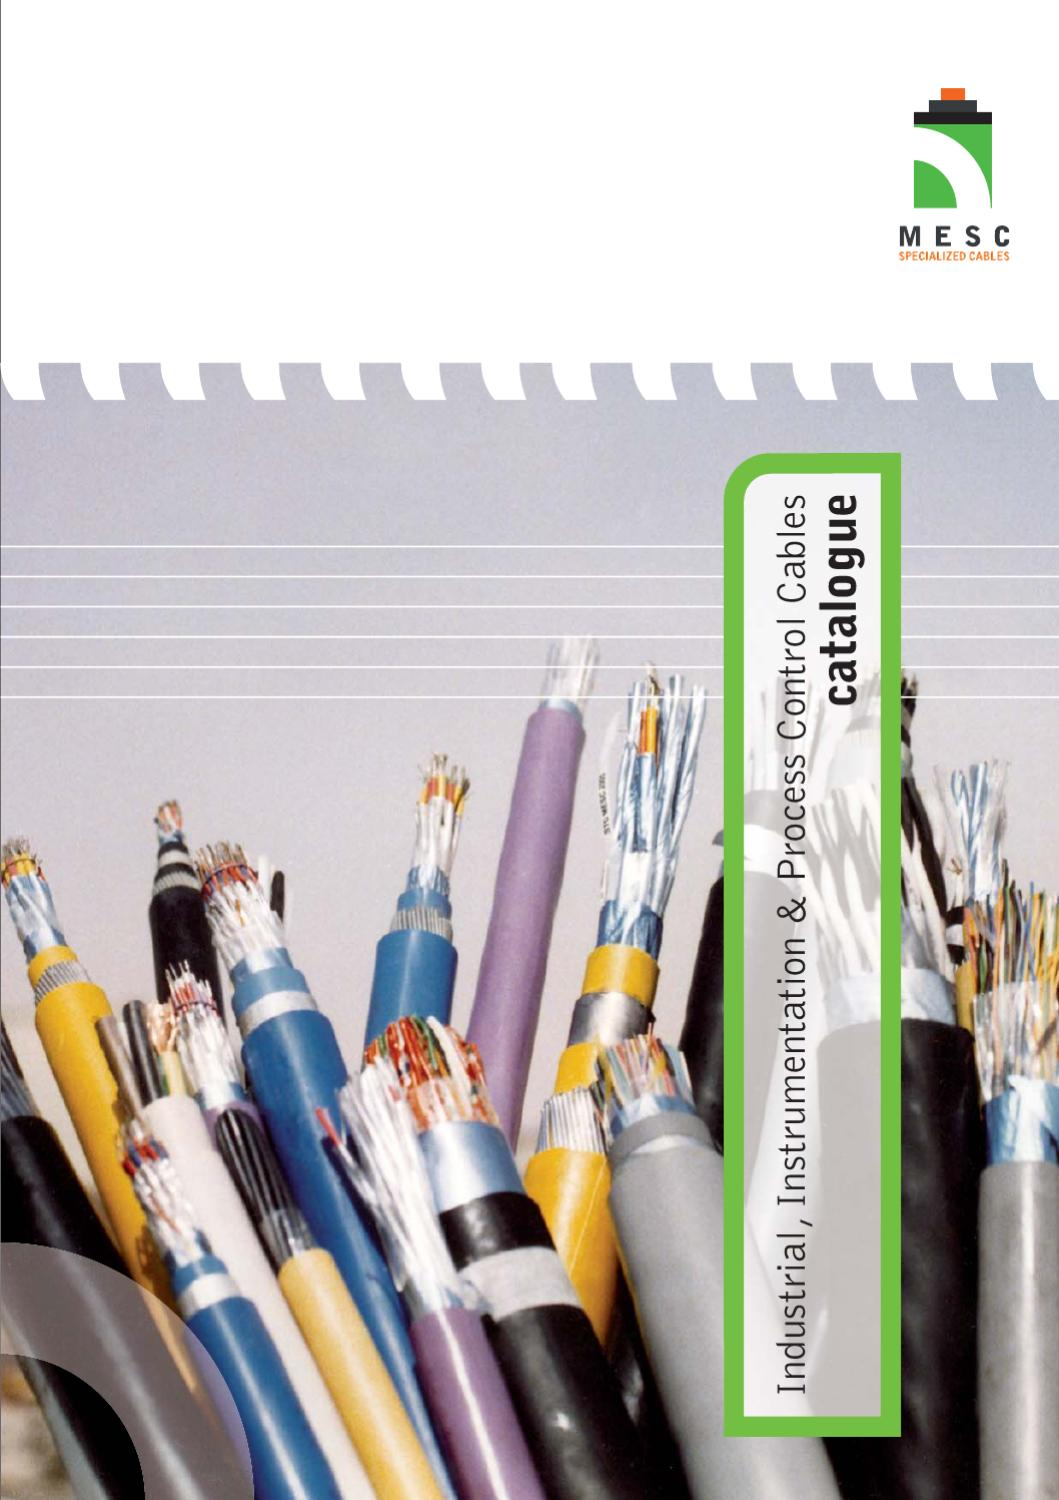 Mesc Instrumentation Cable Catalouge By Mesc Group Issuu